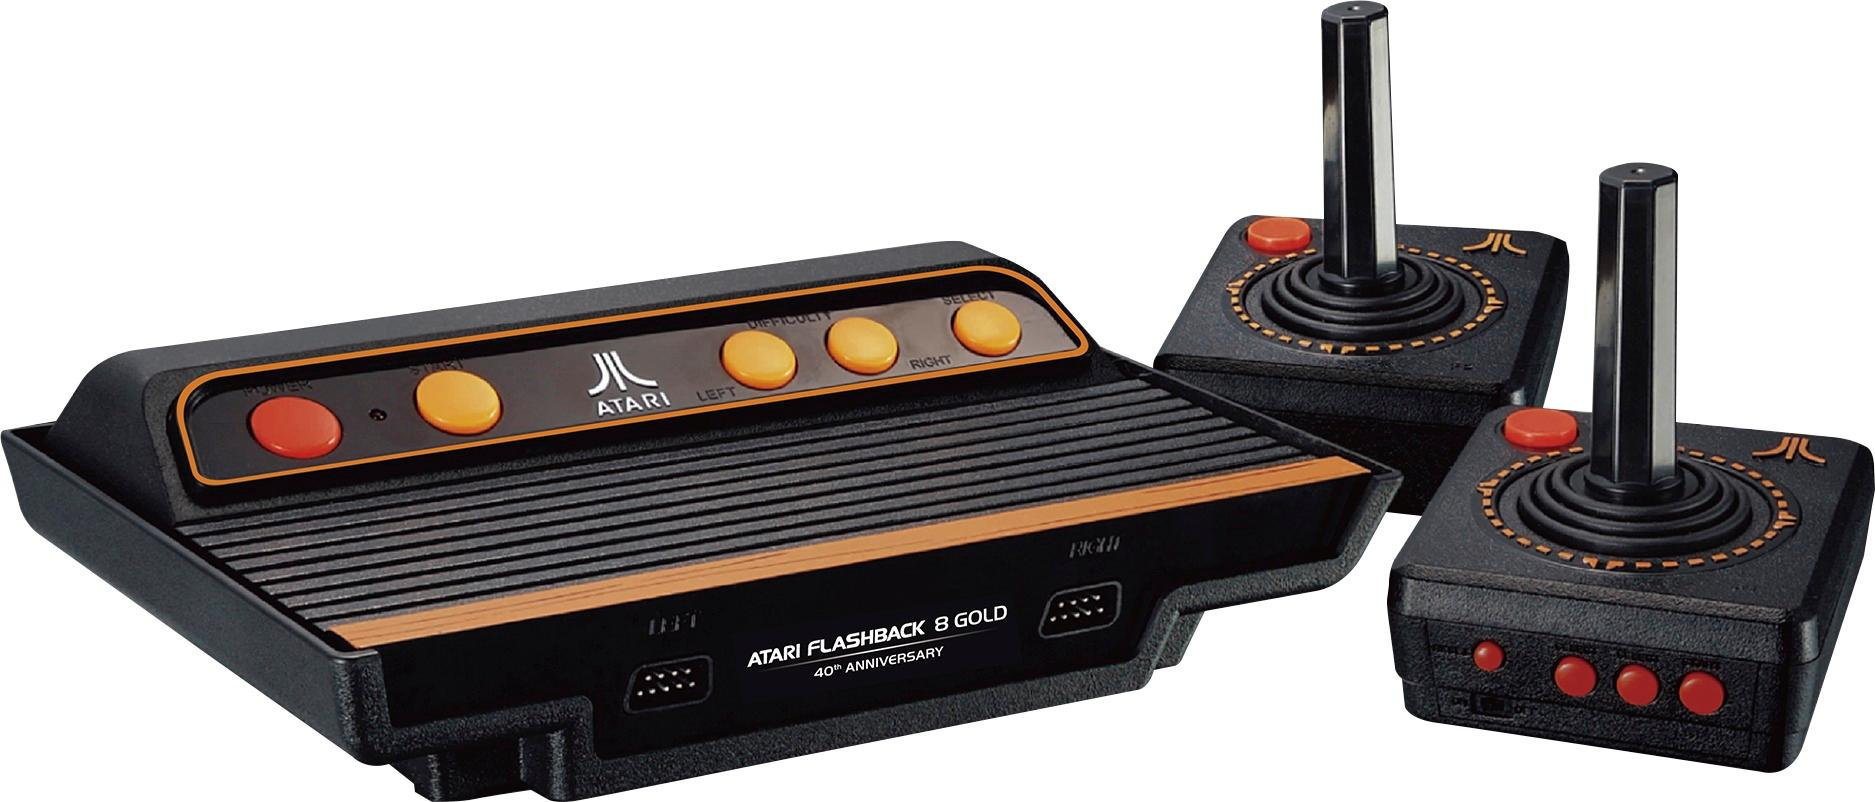 ATARI TEKNOLOGI GAMING PERTAMA - MOBILE GAME INDONESIA